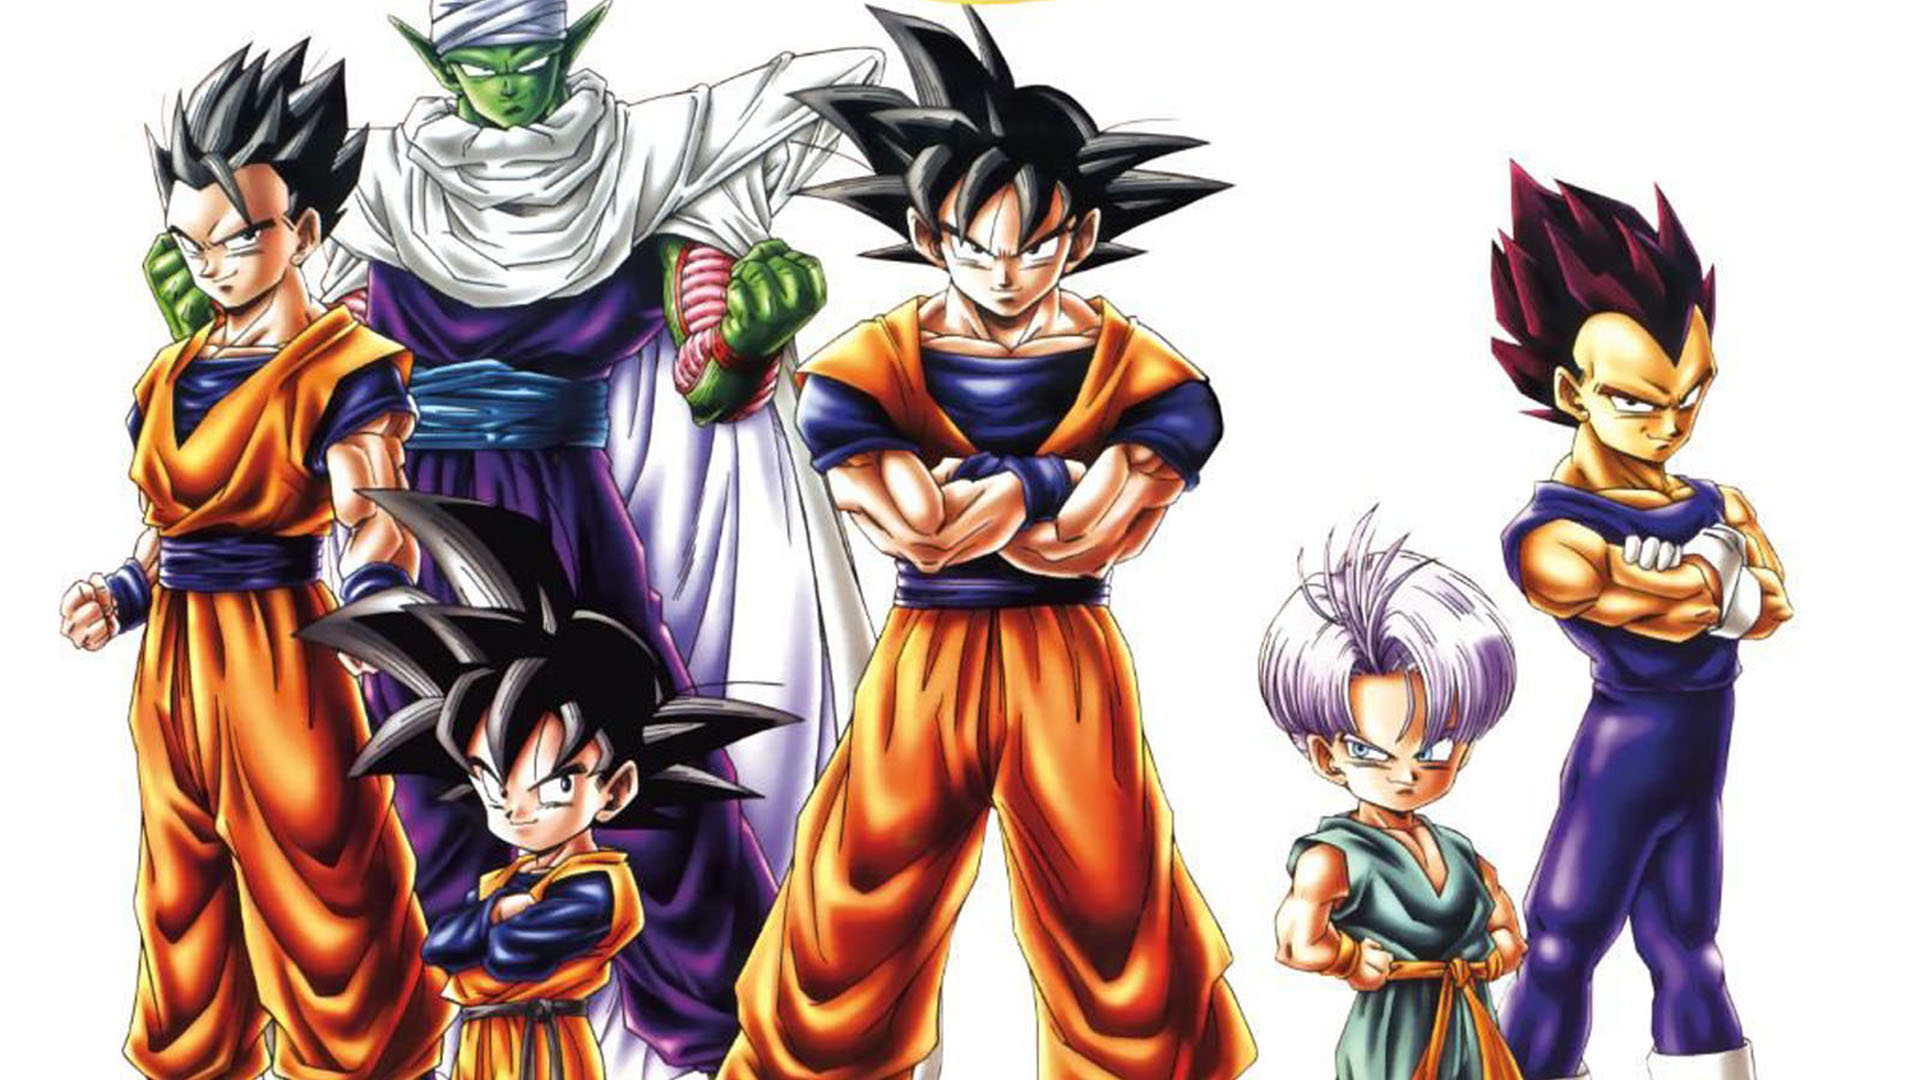 Dragon ball z wallpapers hd 10 for Portefeuille dragon ball z